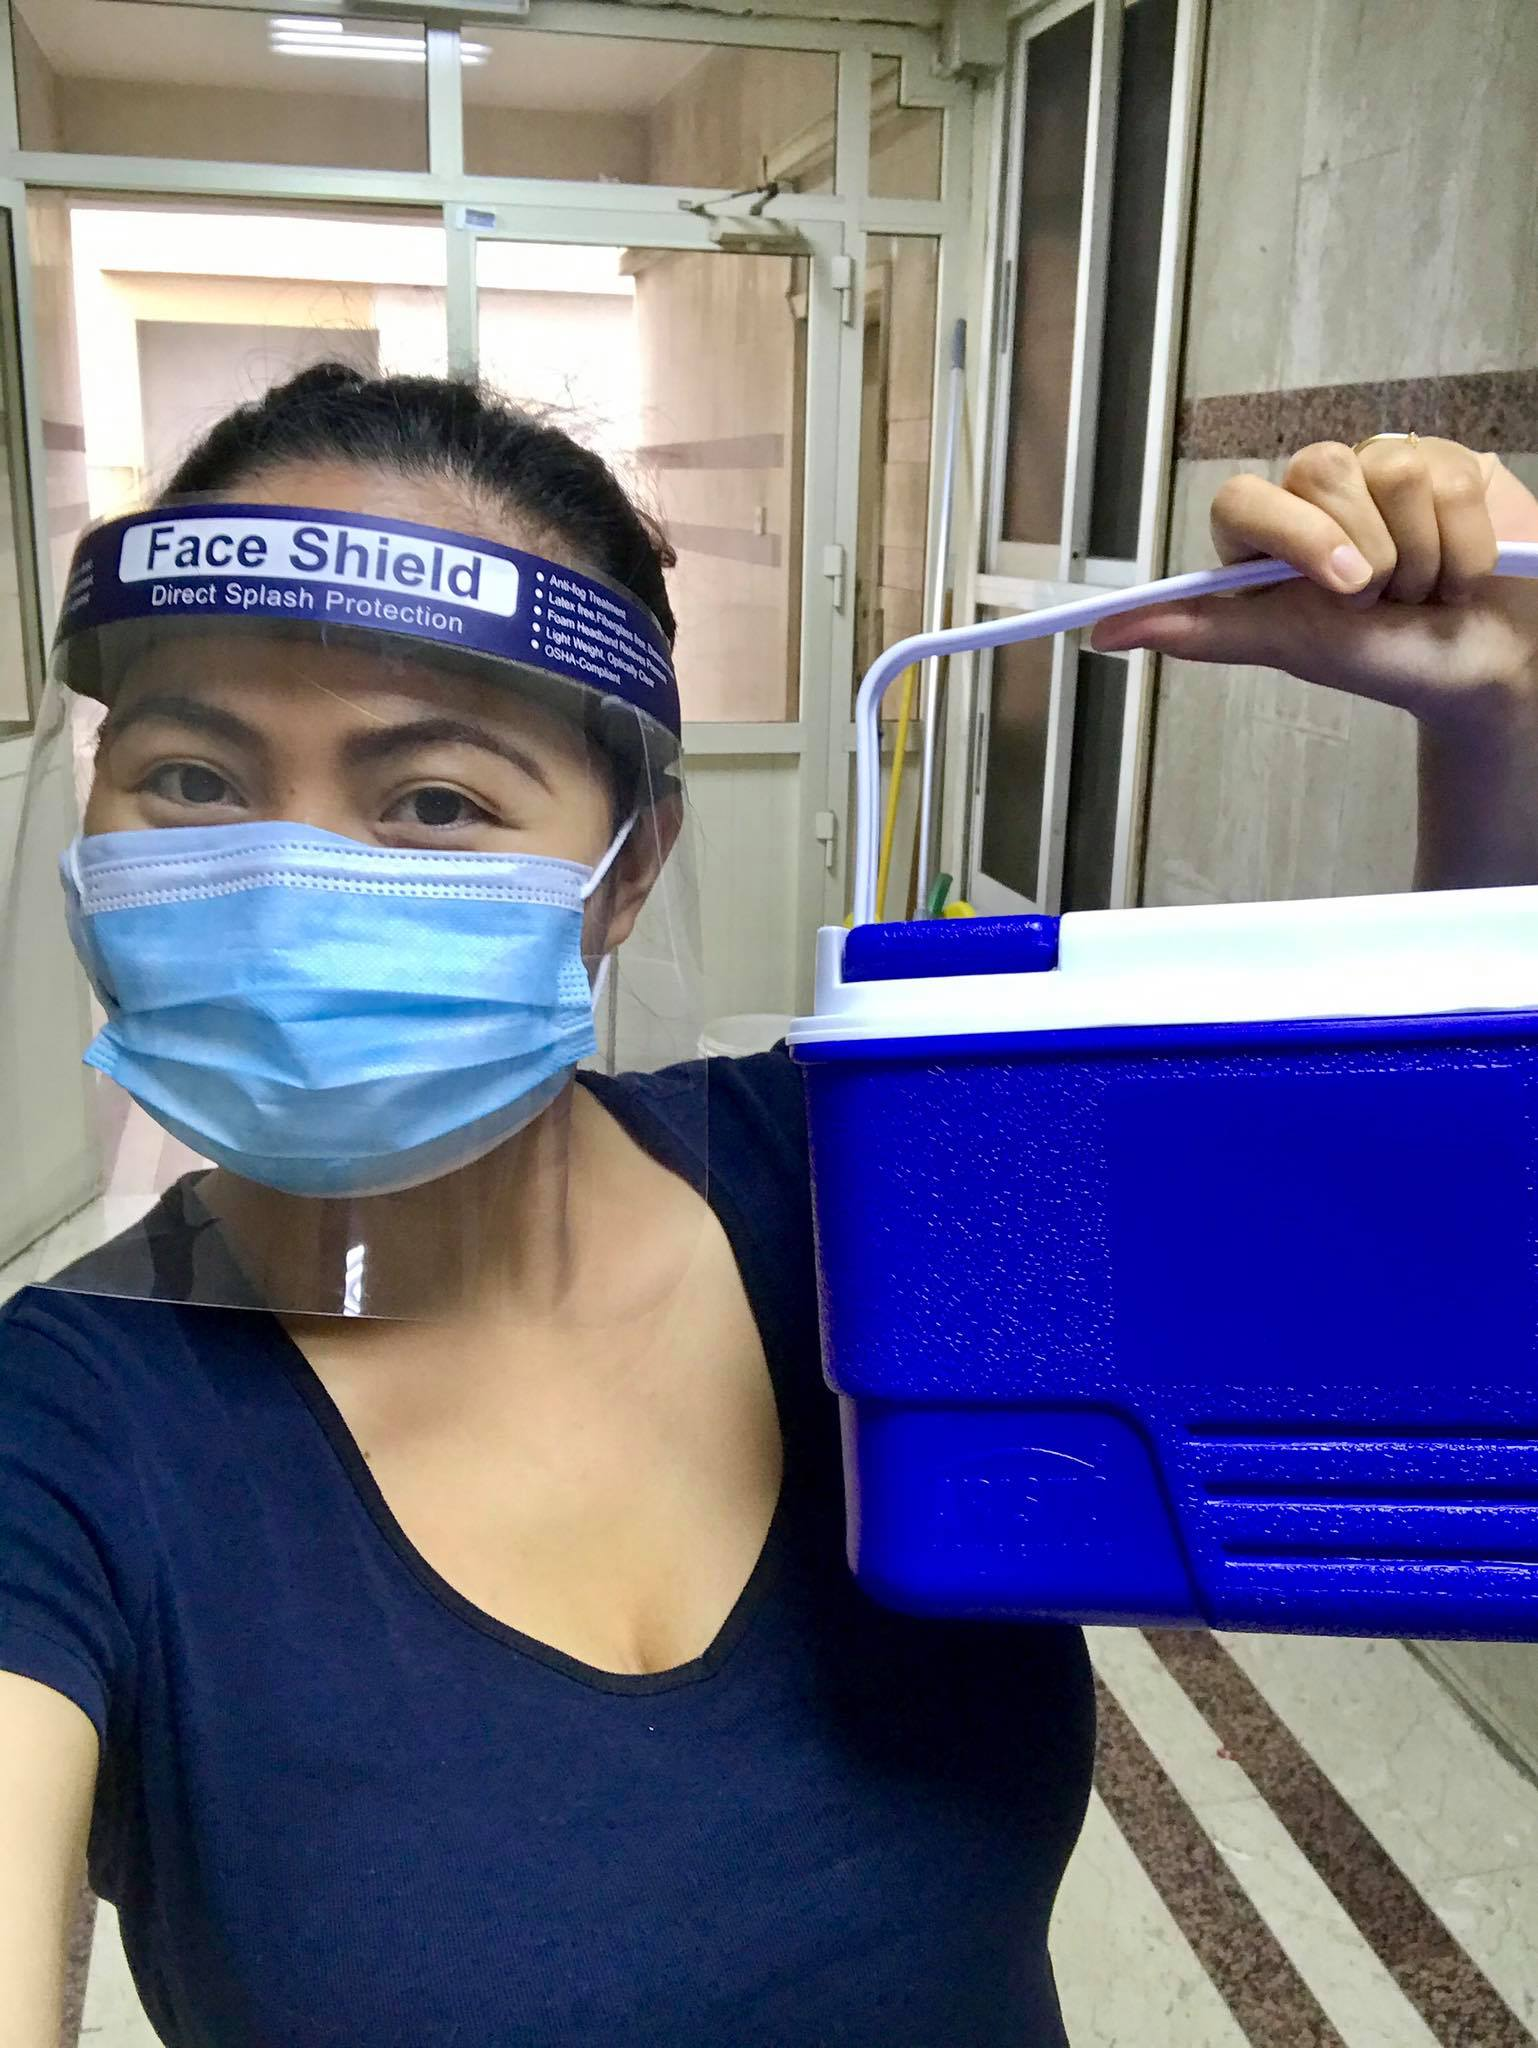 pinay wearing face shield and face mask, holding a cooler with breast milk inside